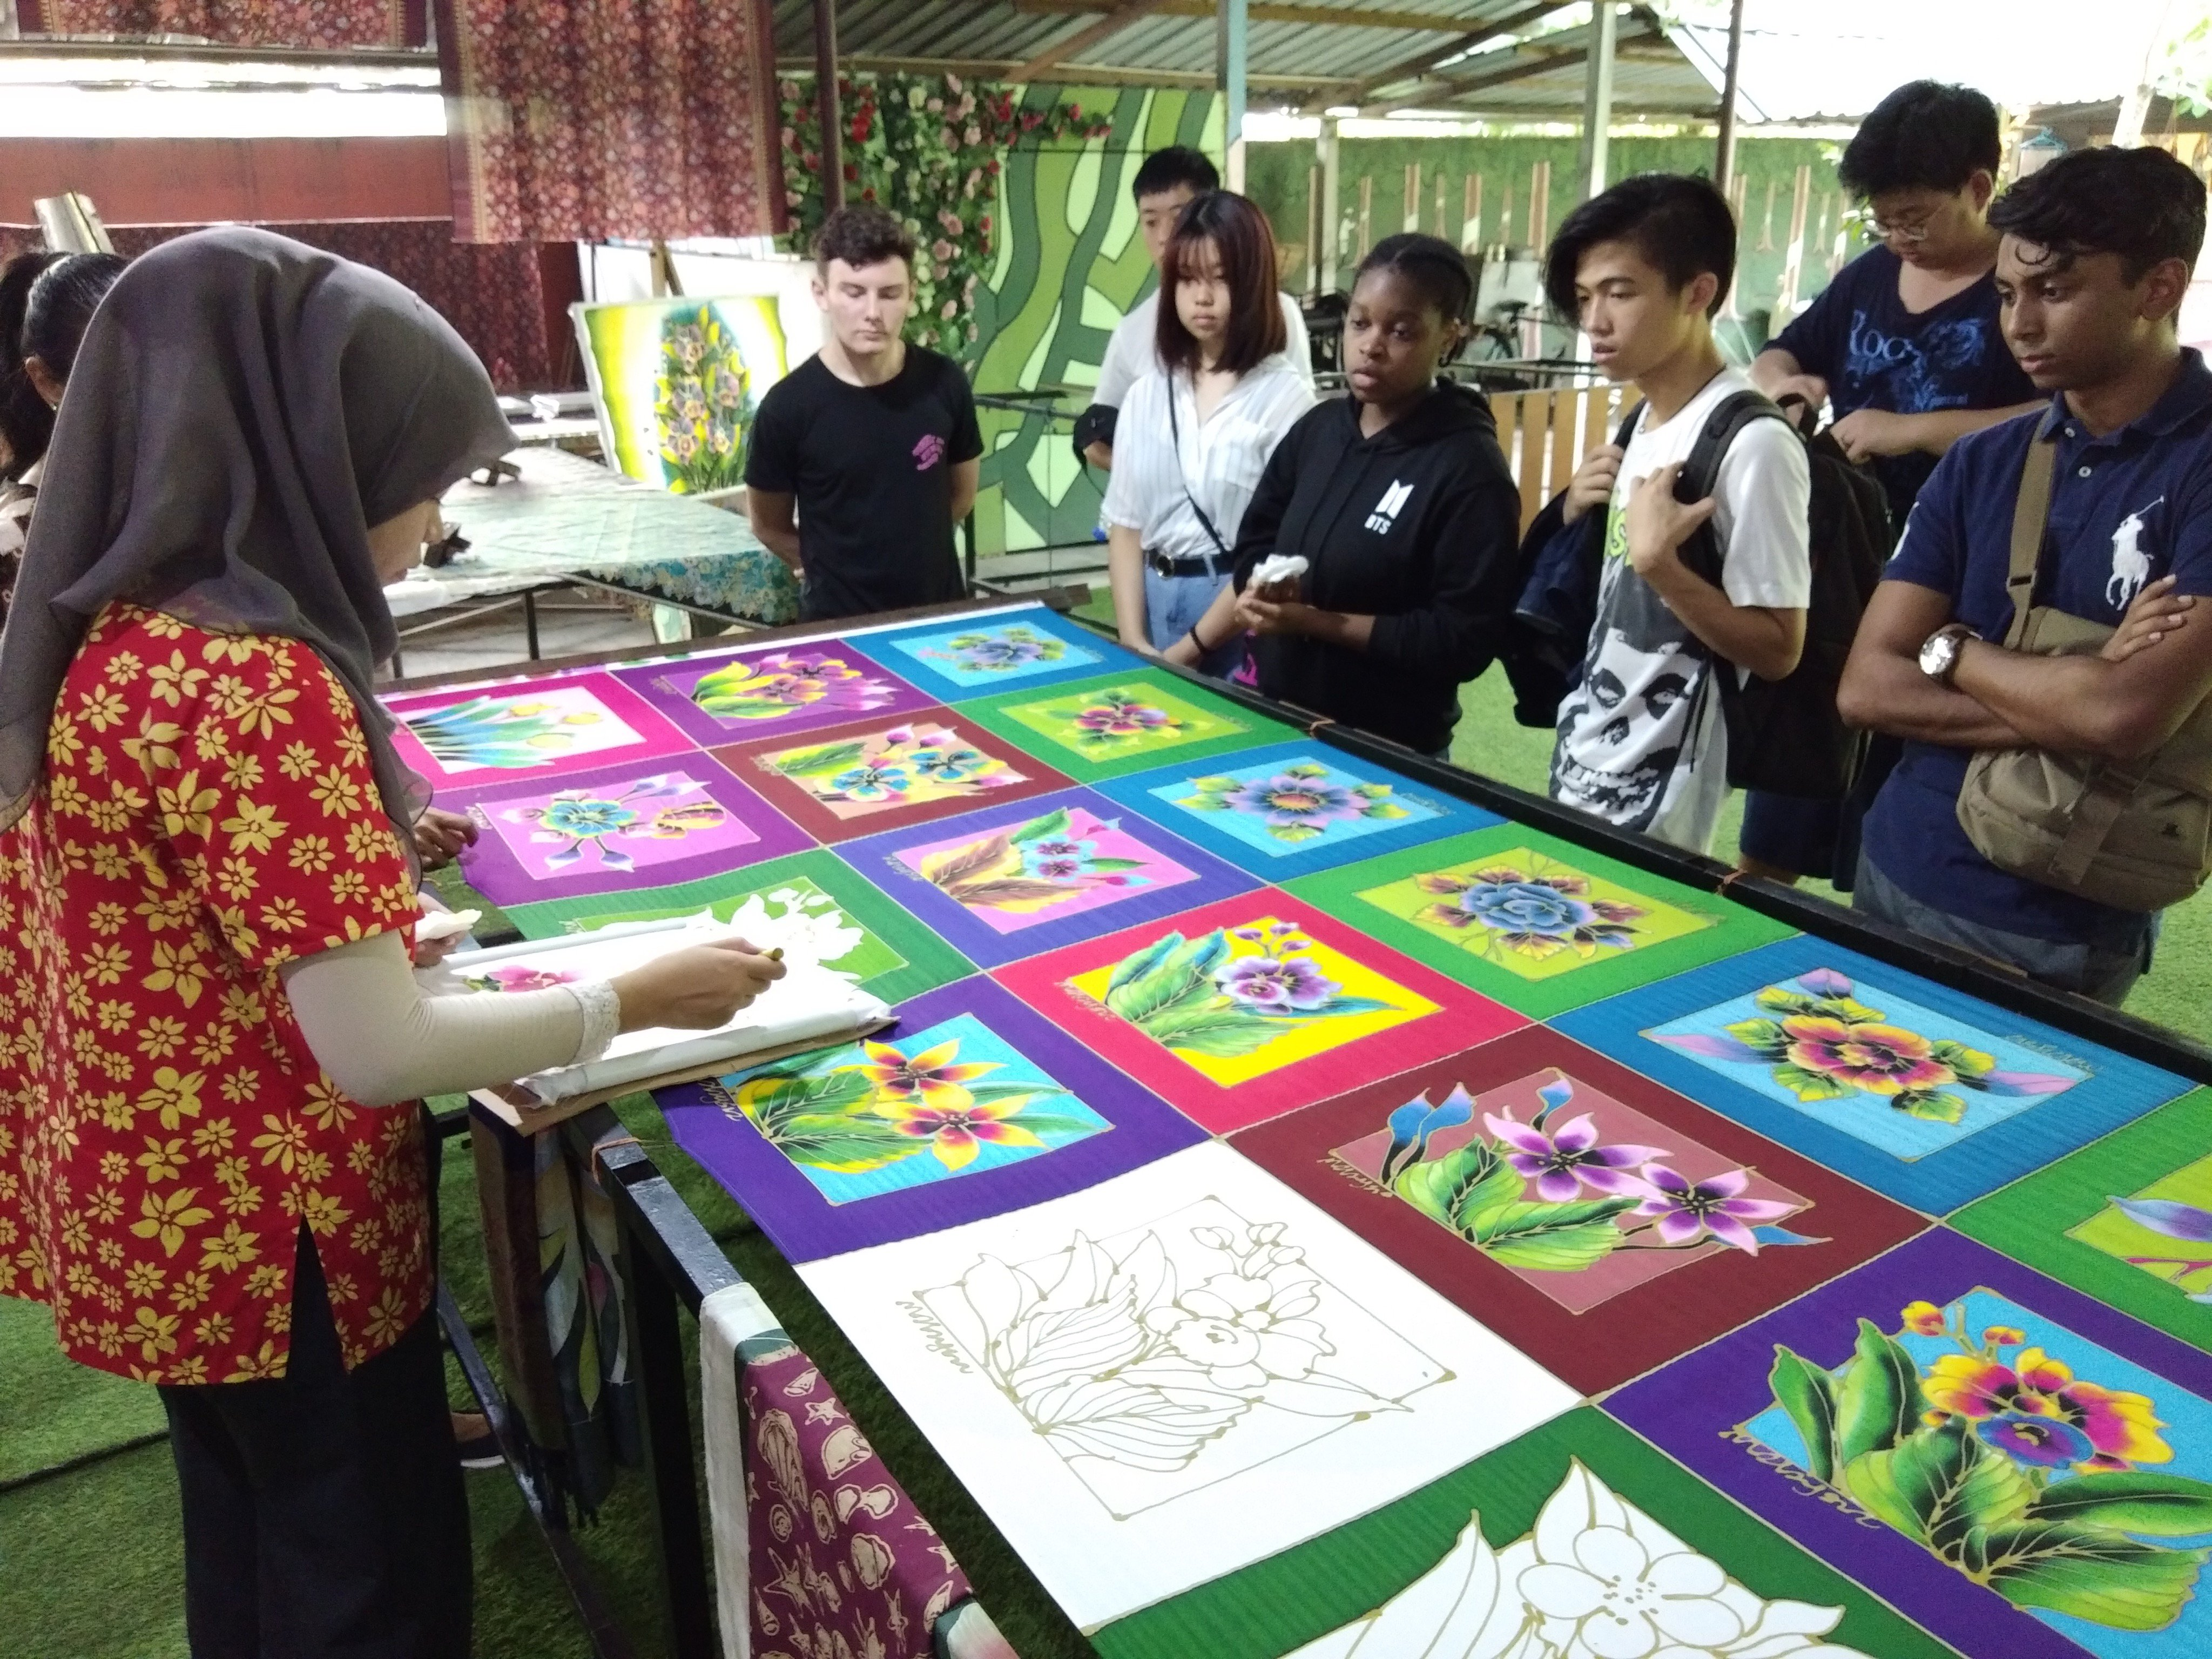 The Malay cultural village